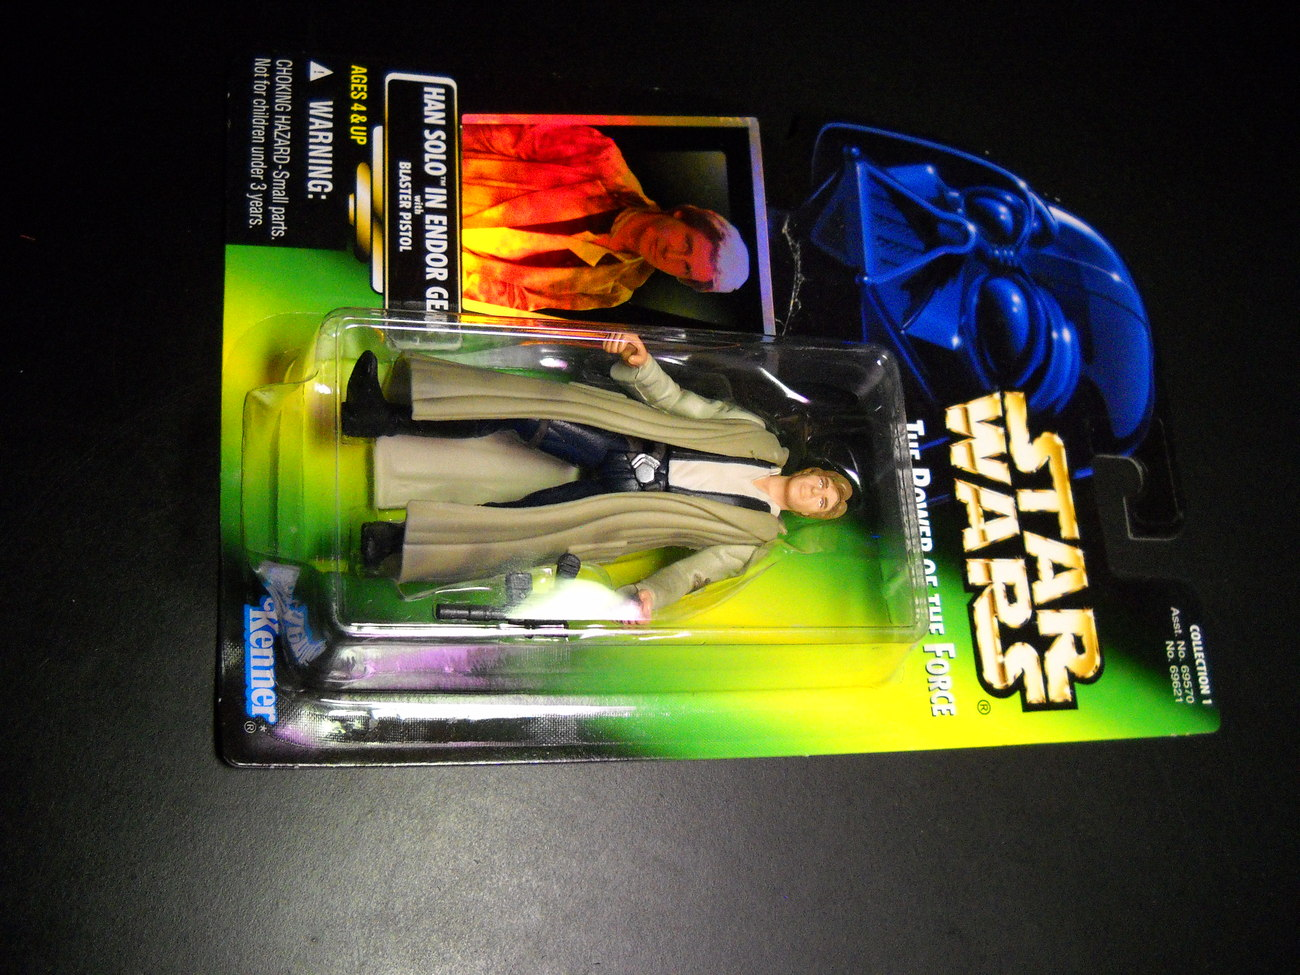 Toy star wars action figure potf green card hans solo 01